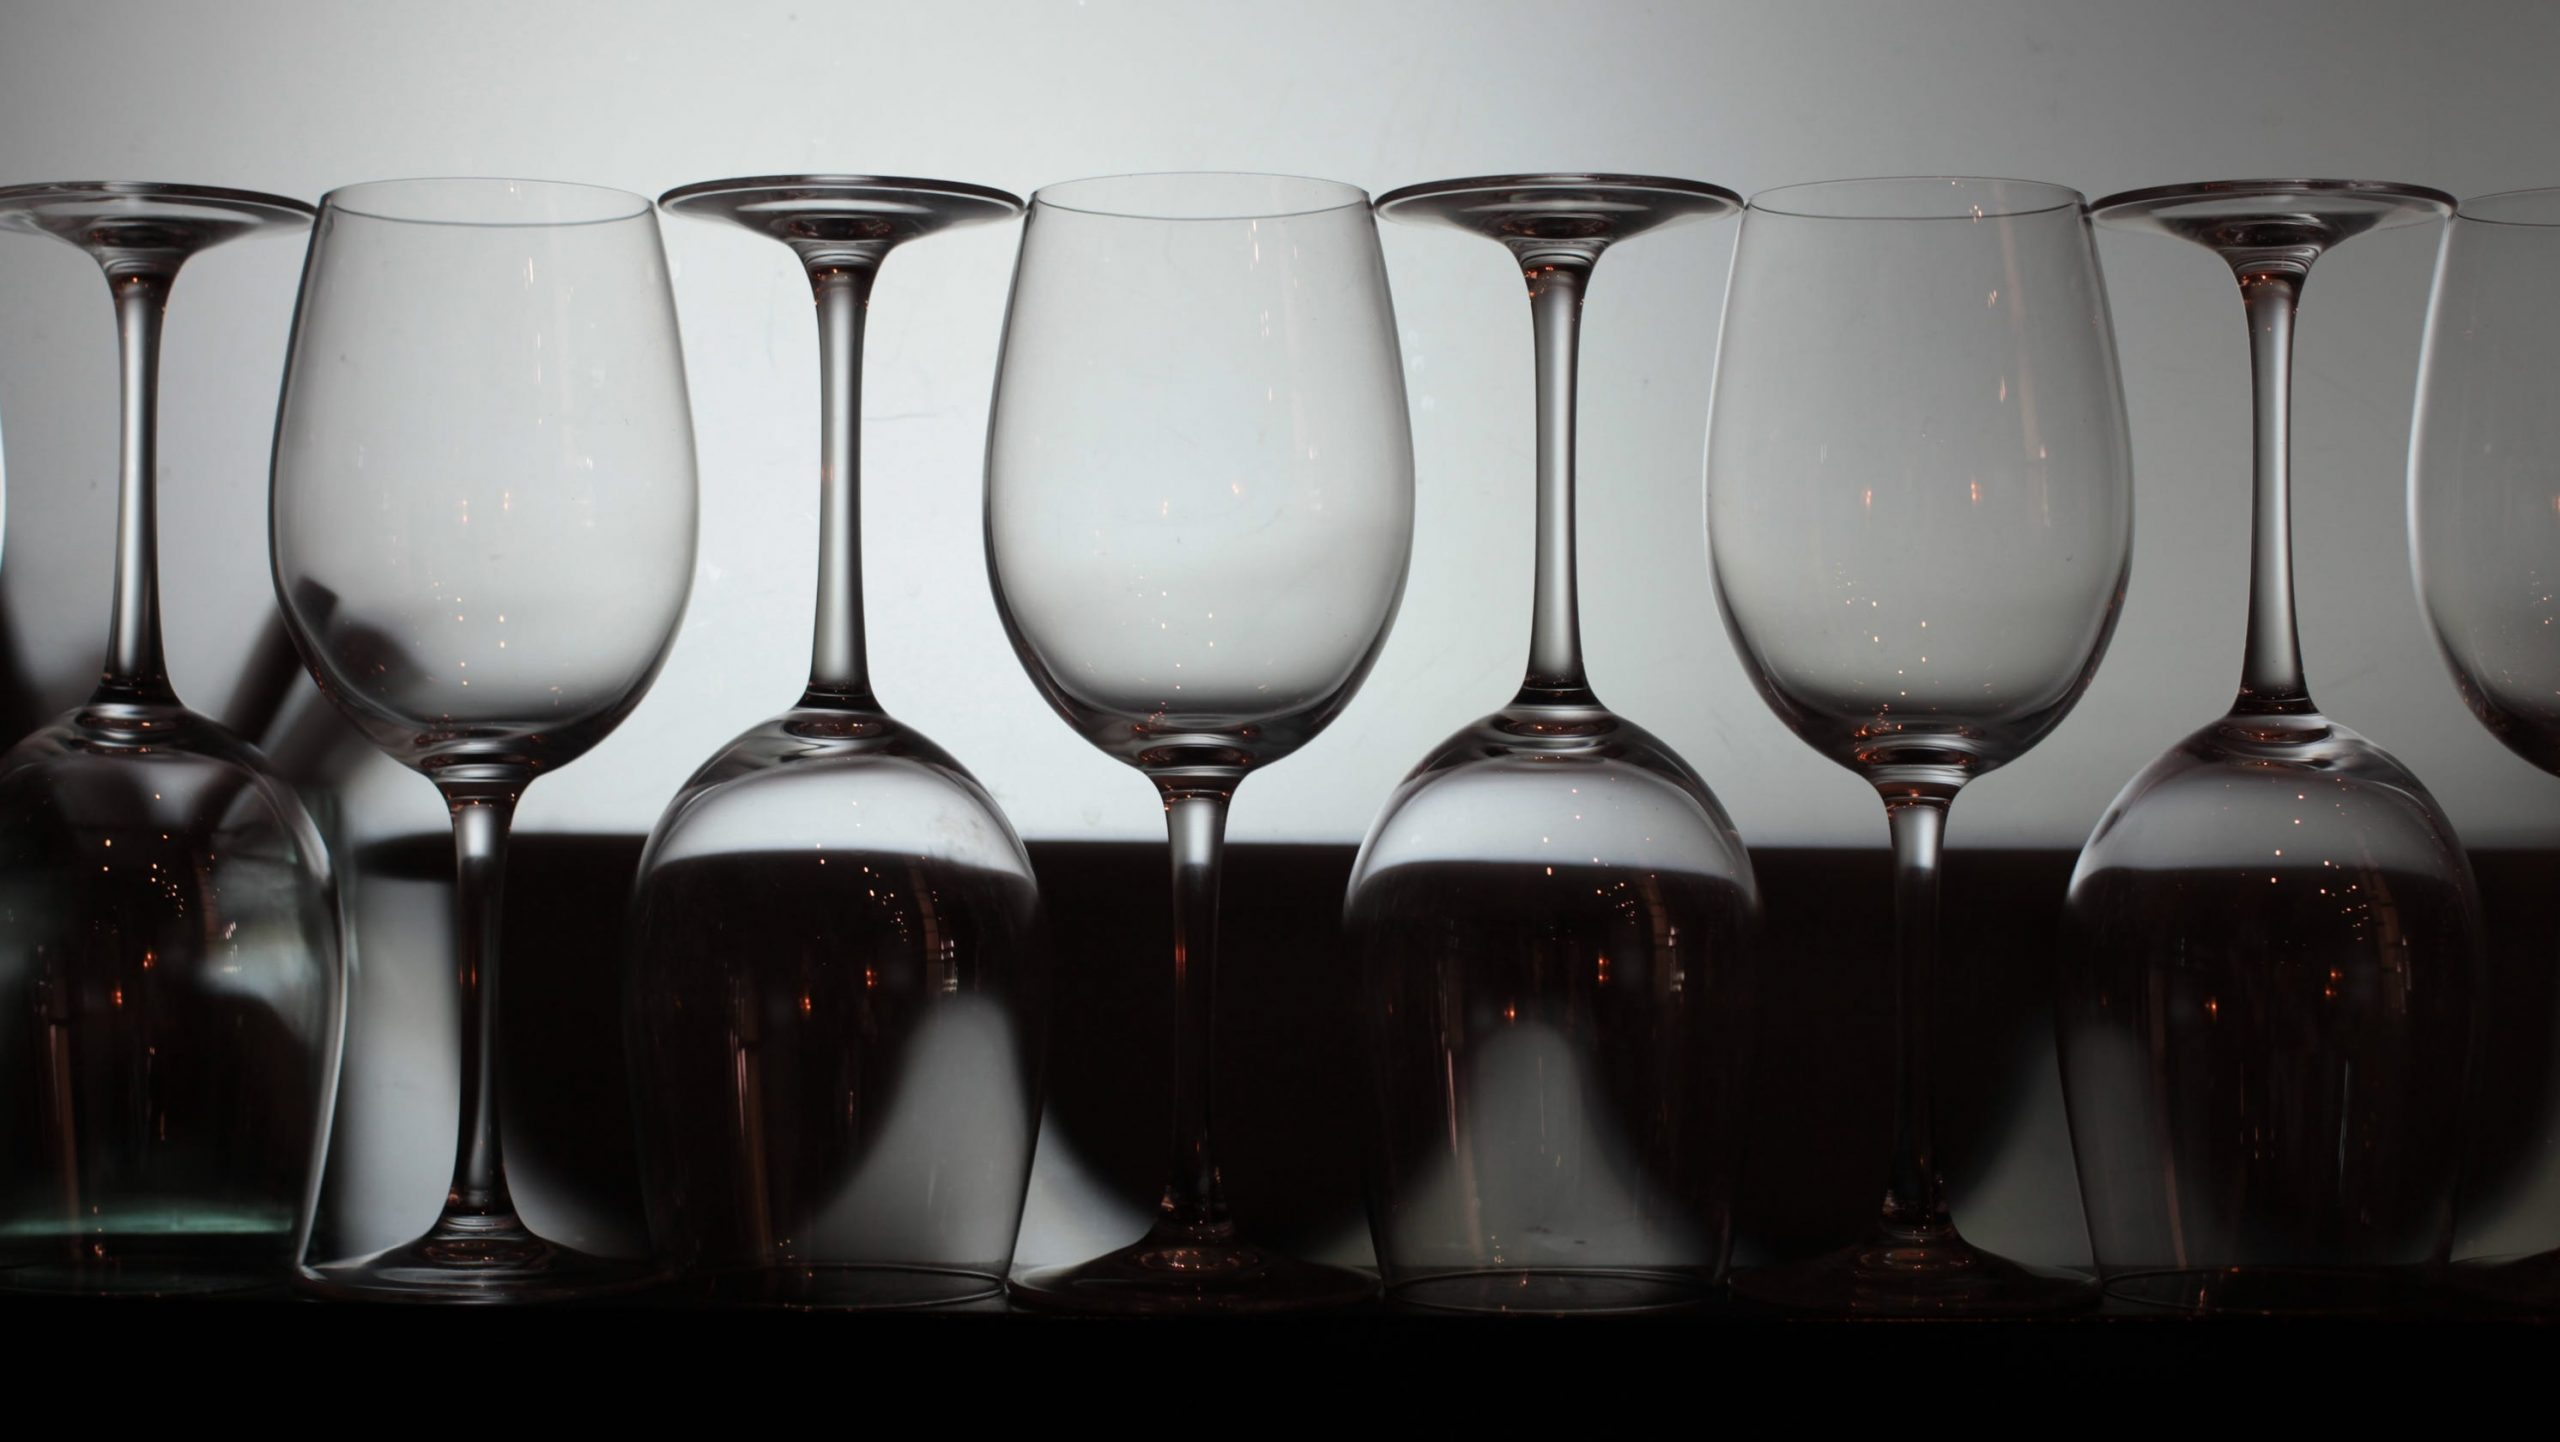 Gus Clemens: Don't Let Dirt Spoil A Good Glass photo